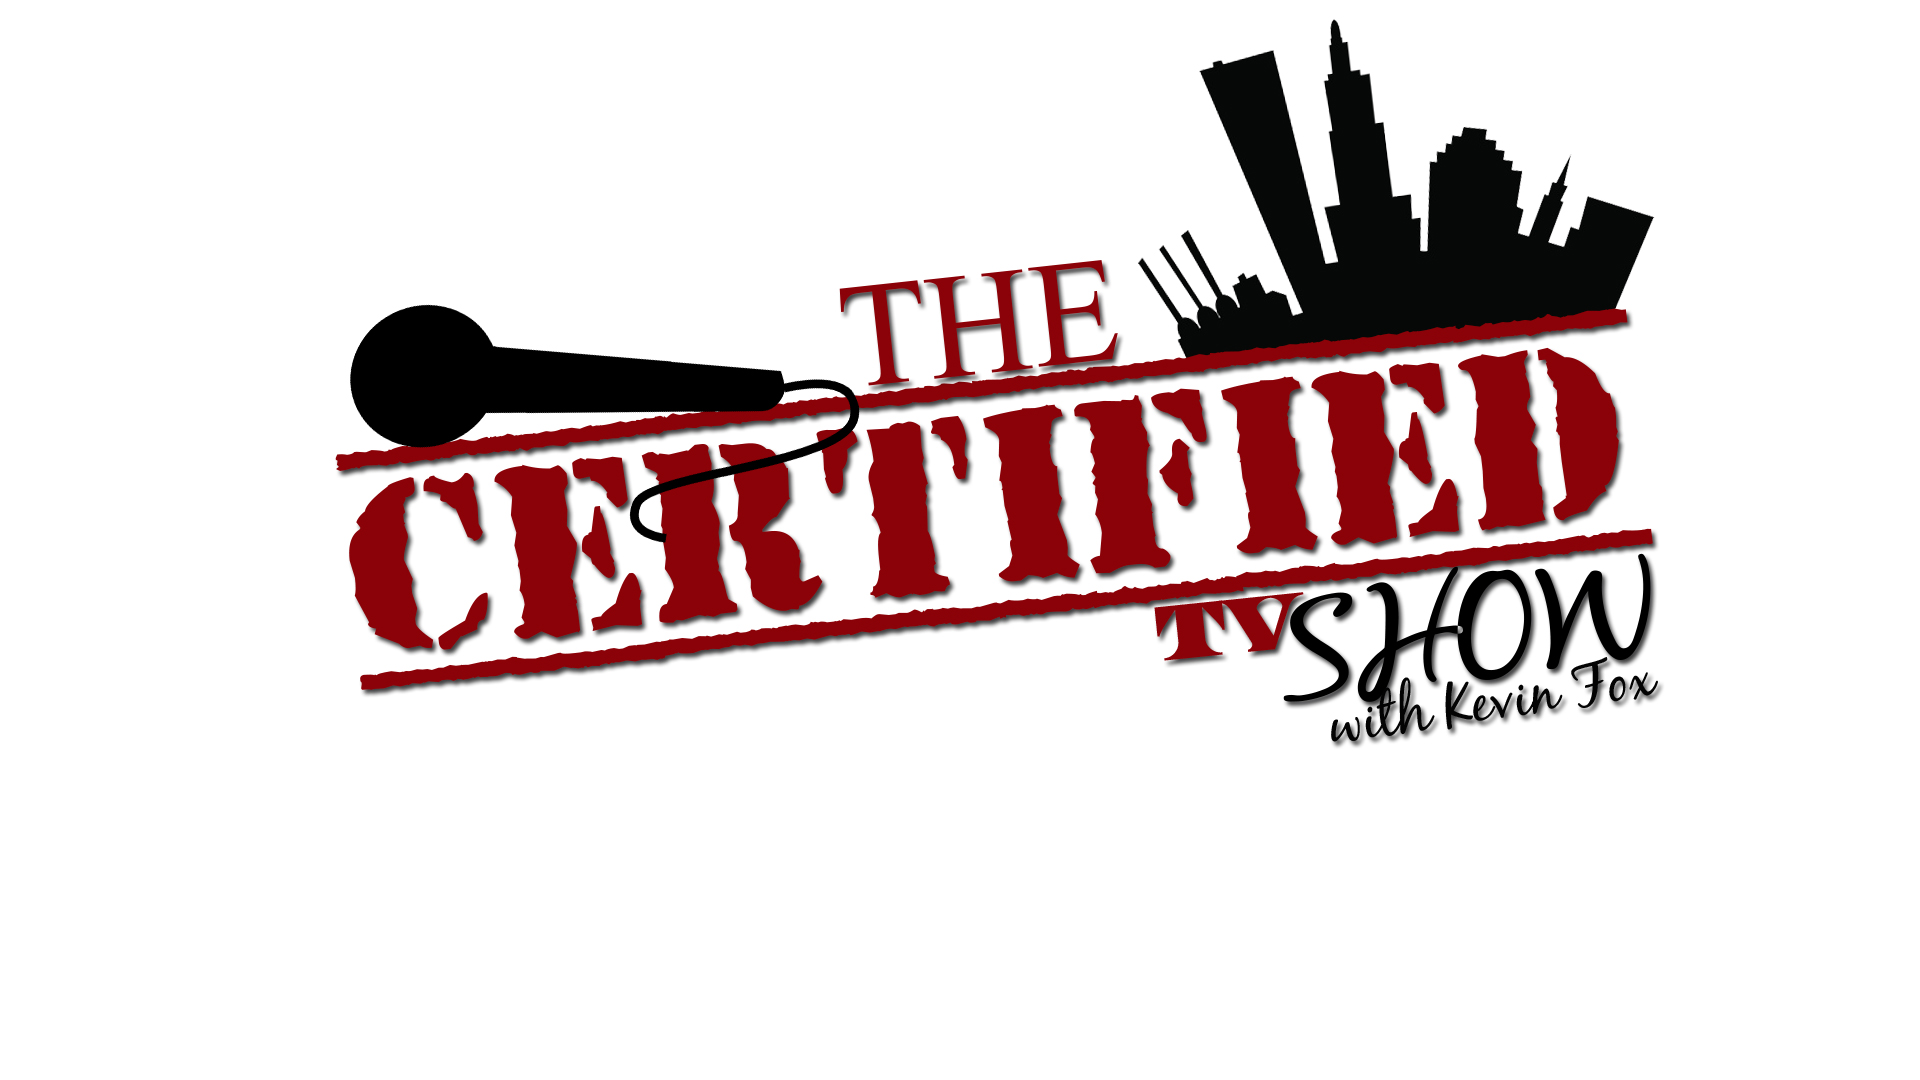 The-Certified-Tv-Show-logo3